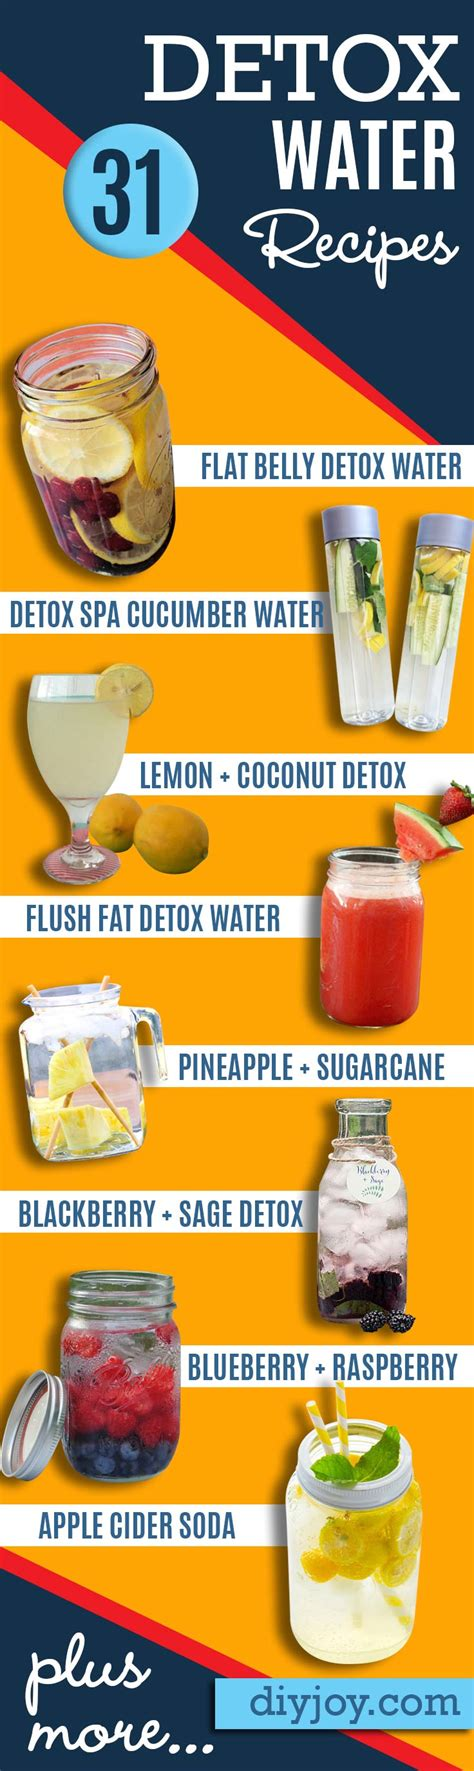 Water To Detox Your by 31 Diy Detox Water Recipes Drinks To Start 2016 Right